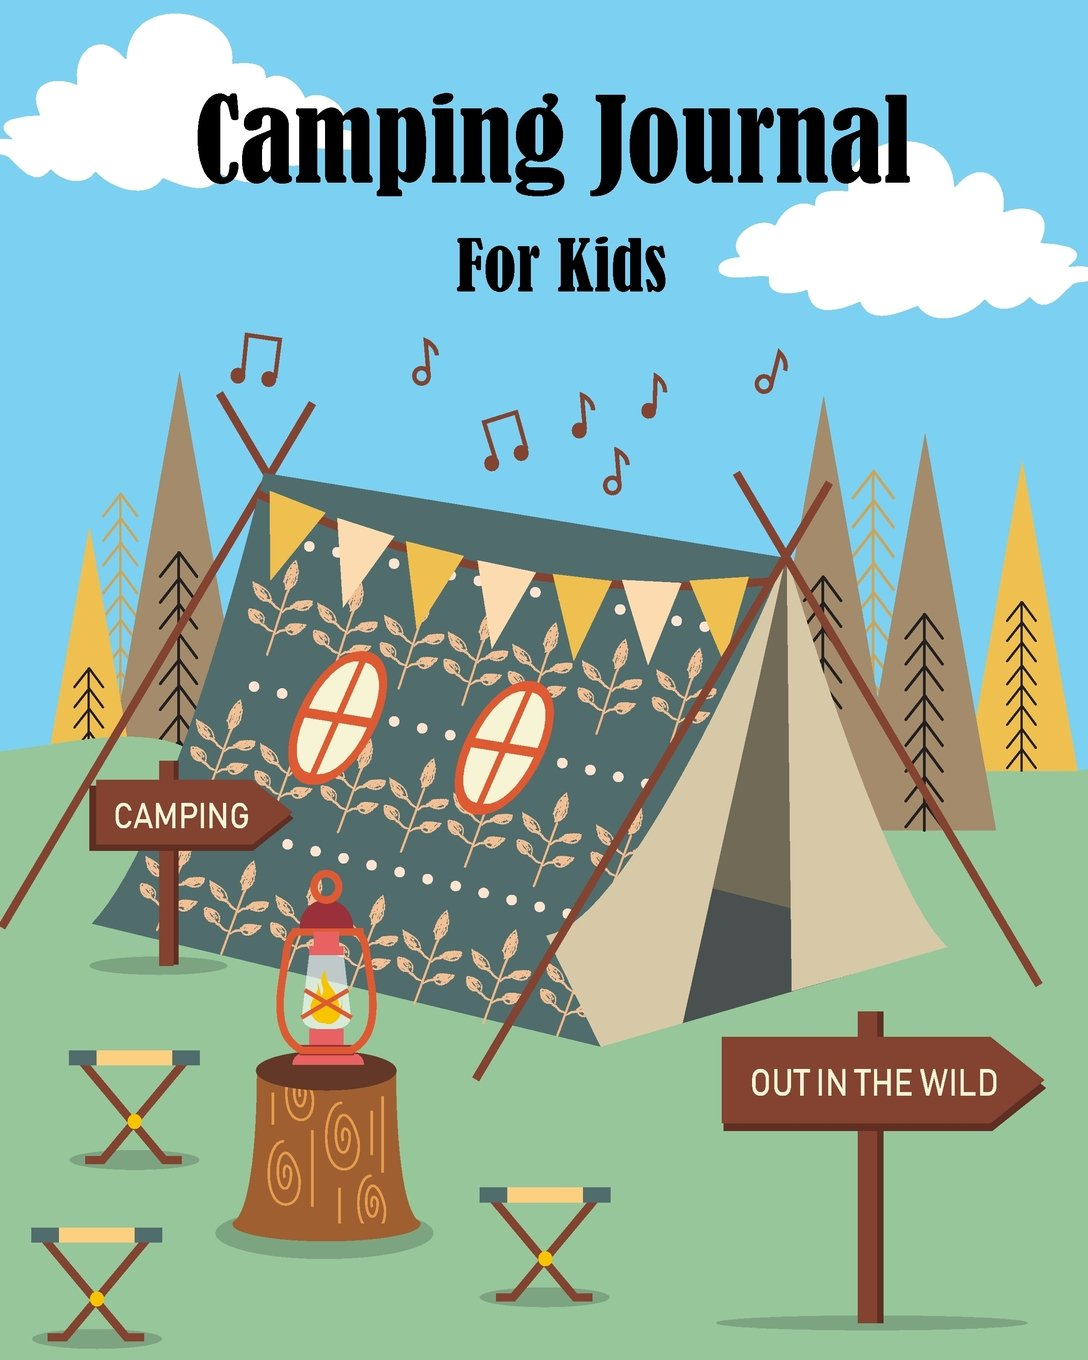 Camping Journal For Kids: Campers Prompts Log Book Children Journal Writing Adventure Activity Record Vacation Notebook  Draw your Favorite Camping ... Inches (Kids Writing and Drawing) (Volume 1) PDF